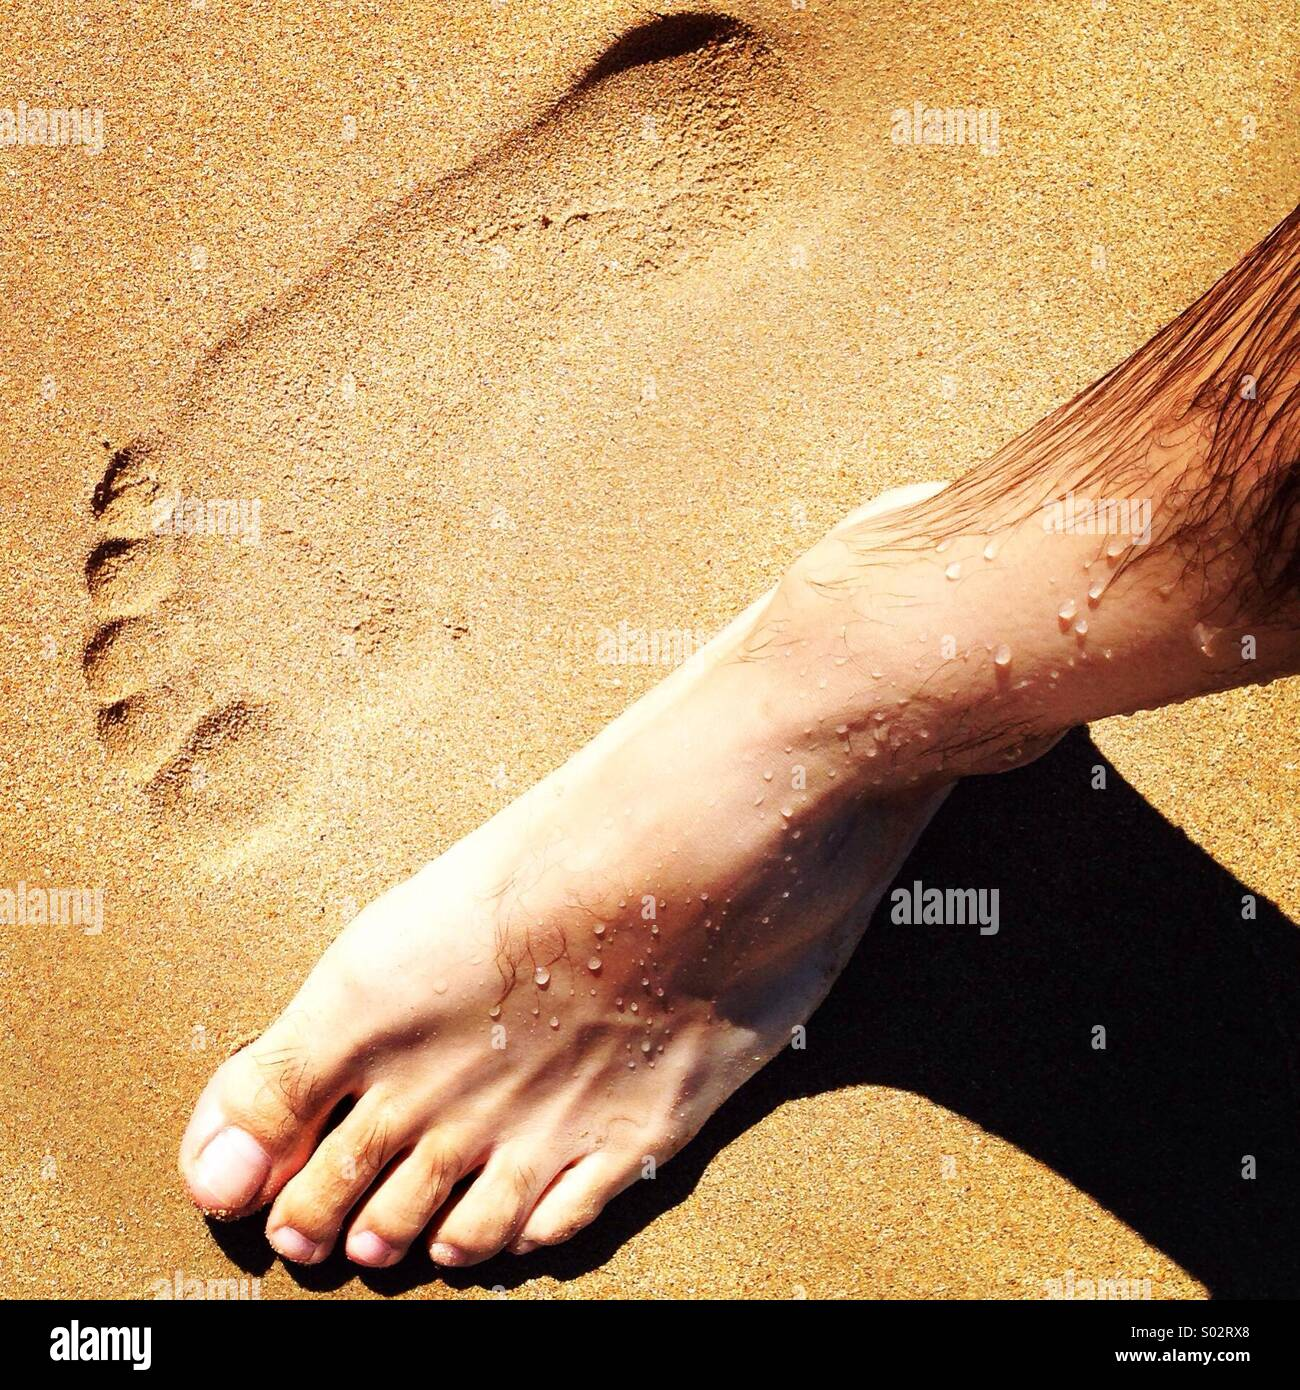 Left foot and footprint on sand - Stock Image